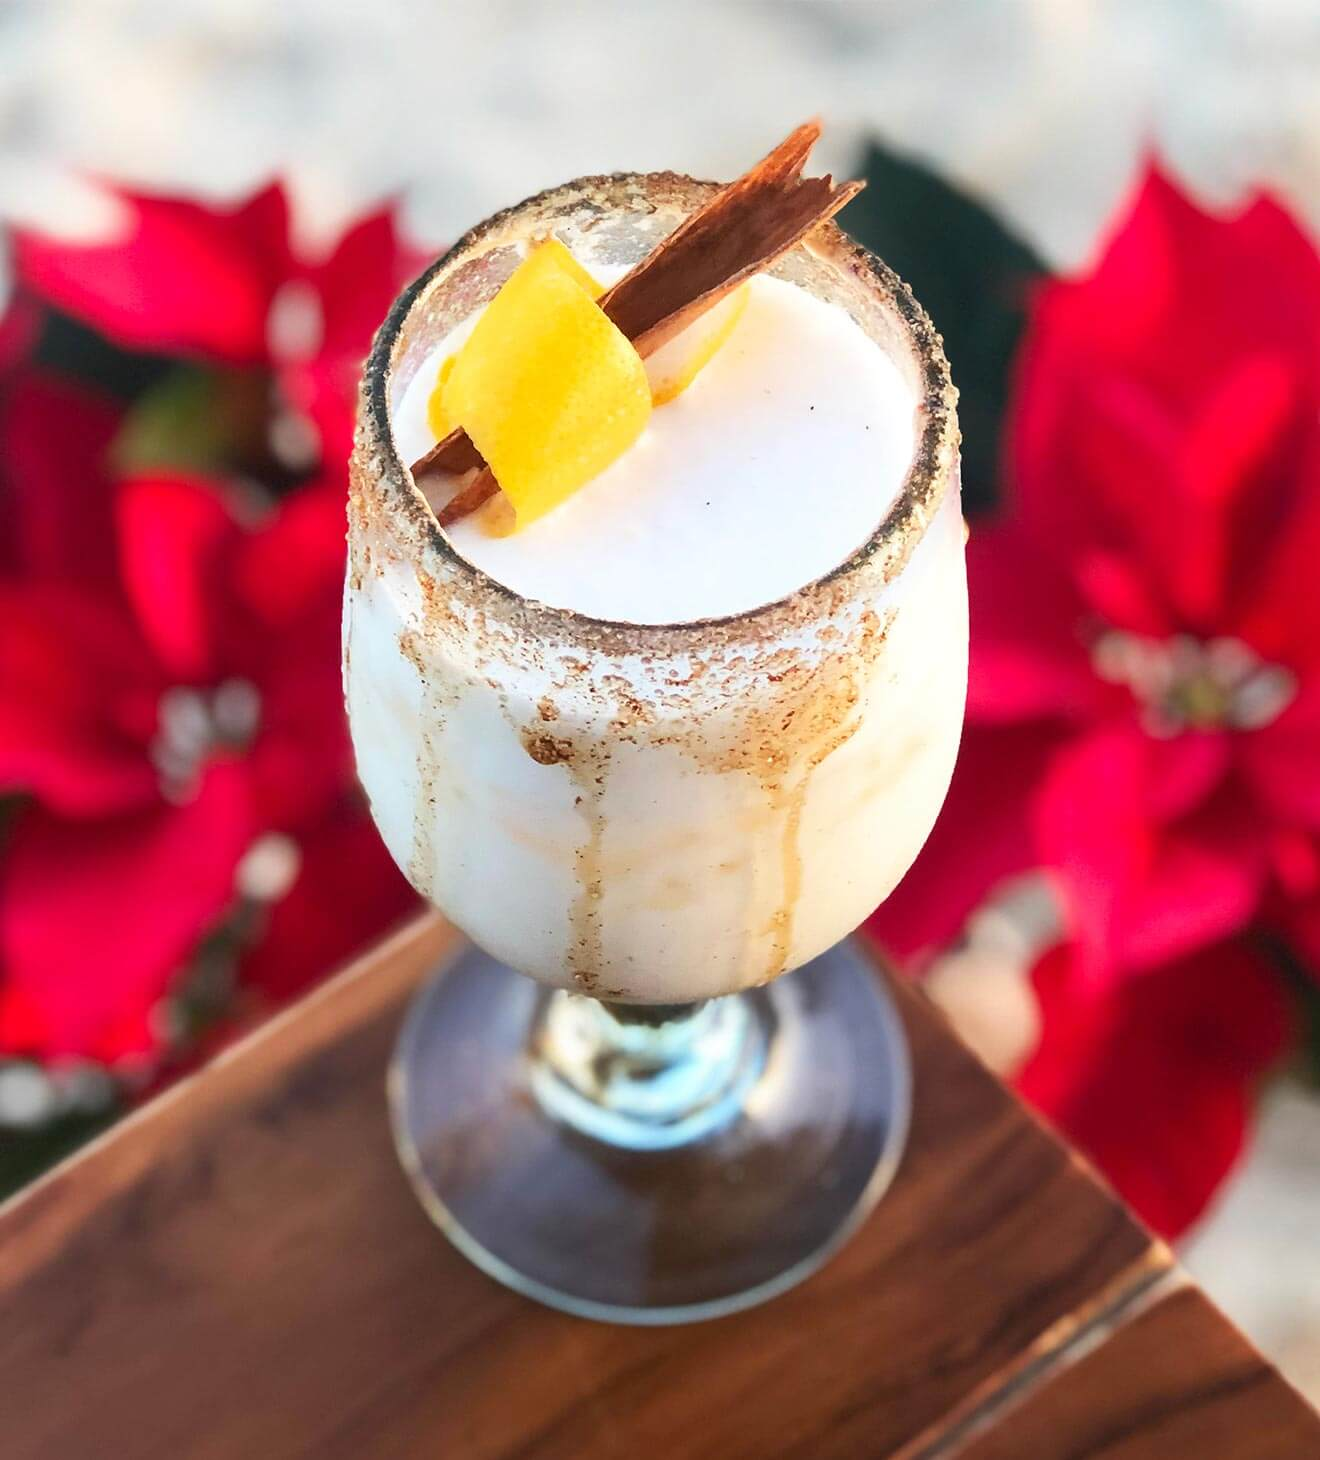 White Christmas, cocktail with garnish, red poinsetta display, featured image